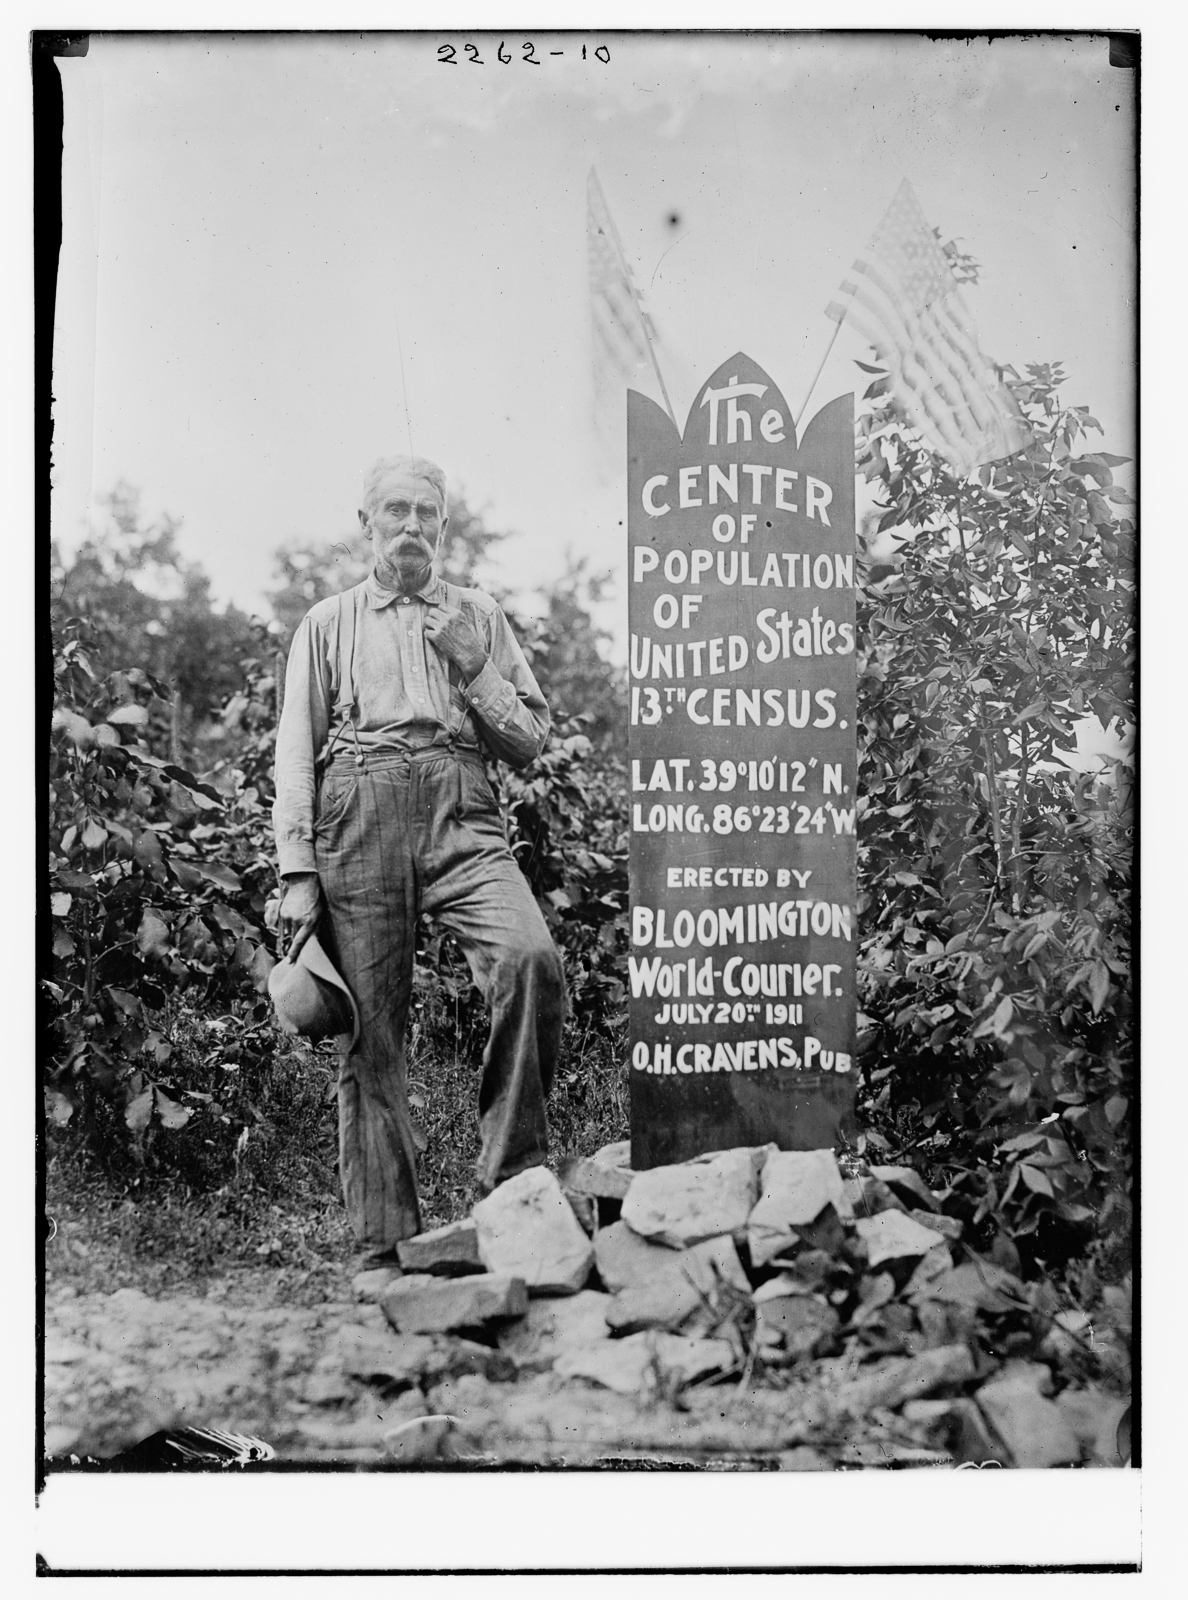 The Center of Population of U.S. [man standing next to memorial stone],Bain News Service [publisher],ca. 1910 and ca. 1915, via Library of Congress